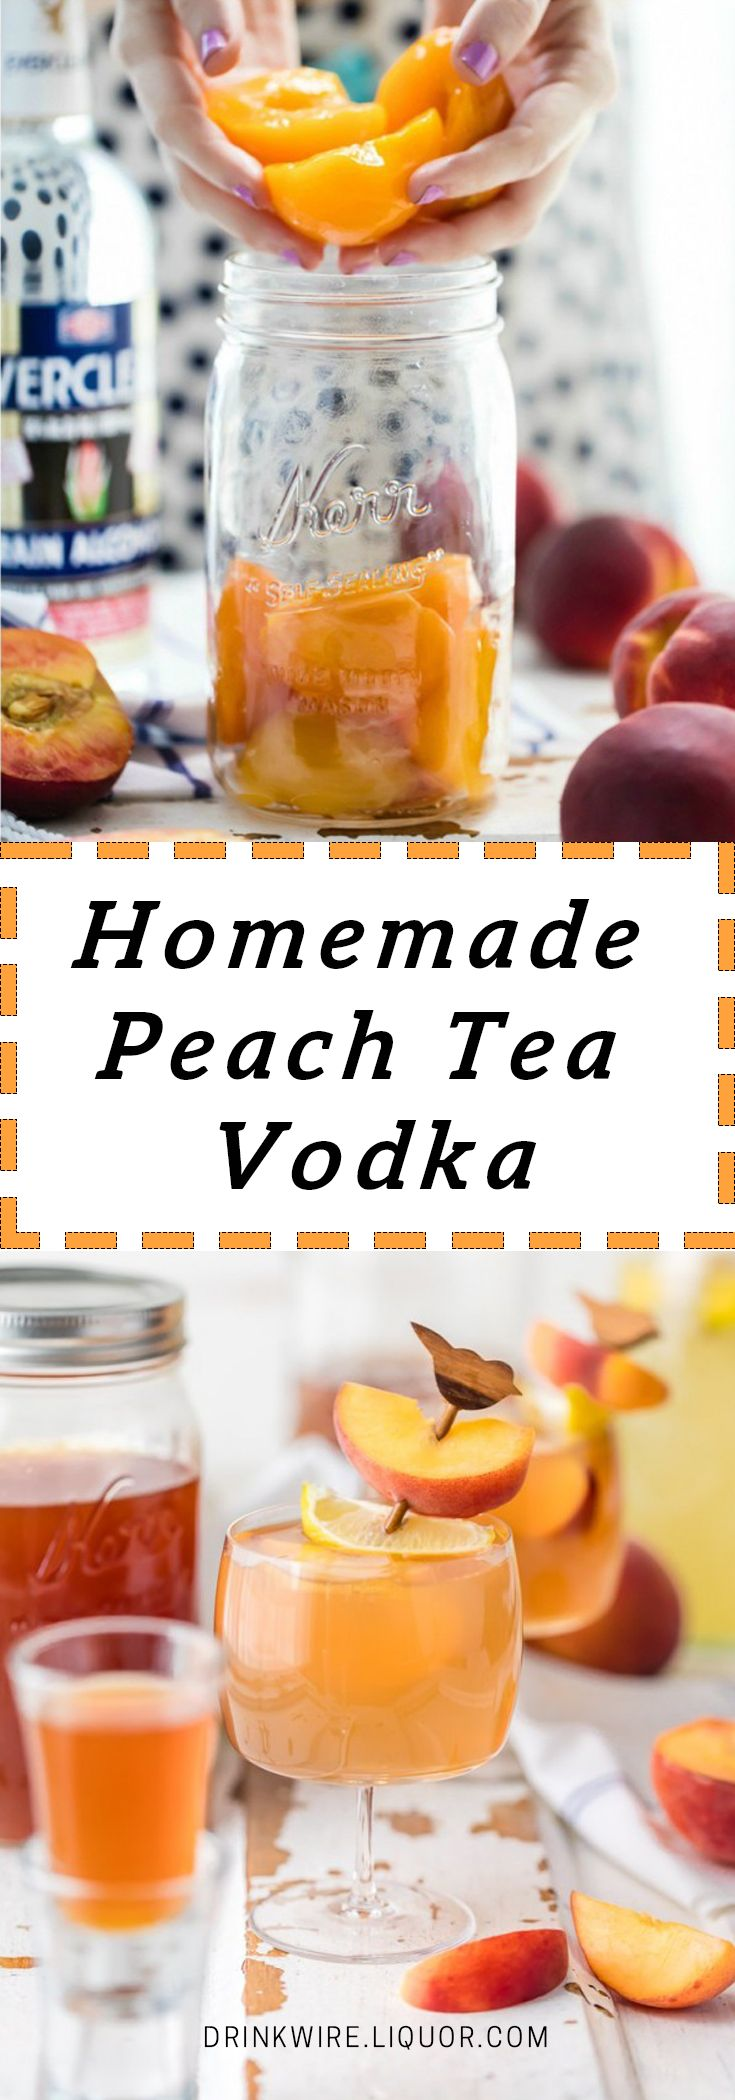 Homemade Peach Tea Vodka is an easy and fun DIY liqueur. Easily made by infusing neutral spirits with peaches and black tea, the perfect mixer for so many summer cocktails!